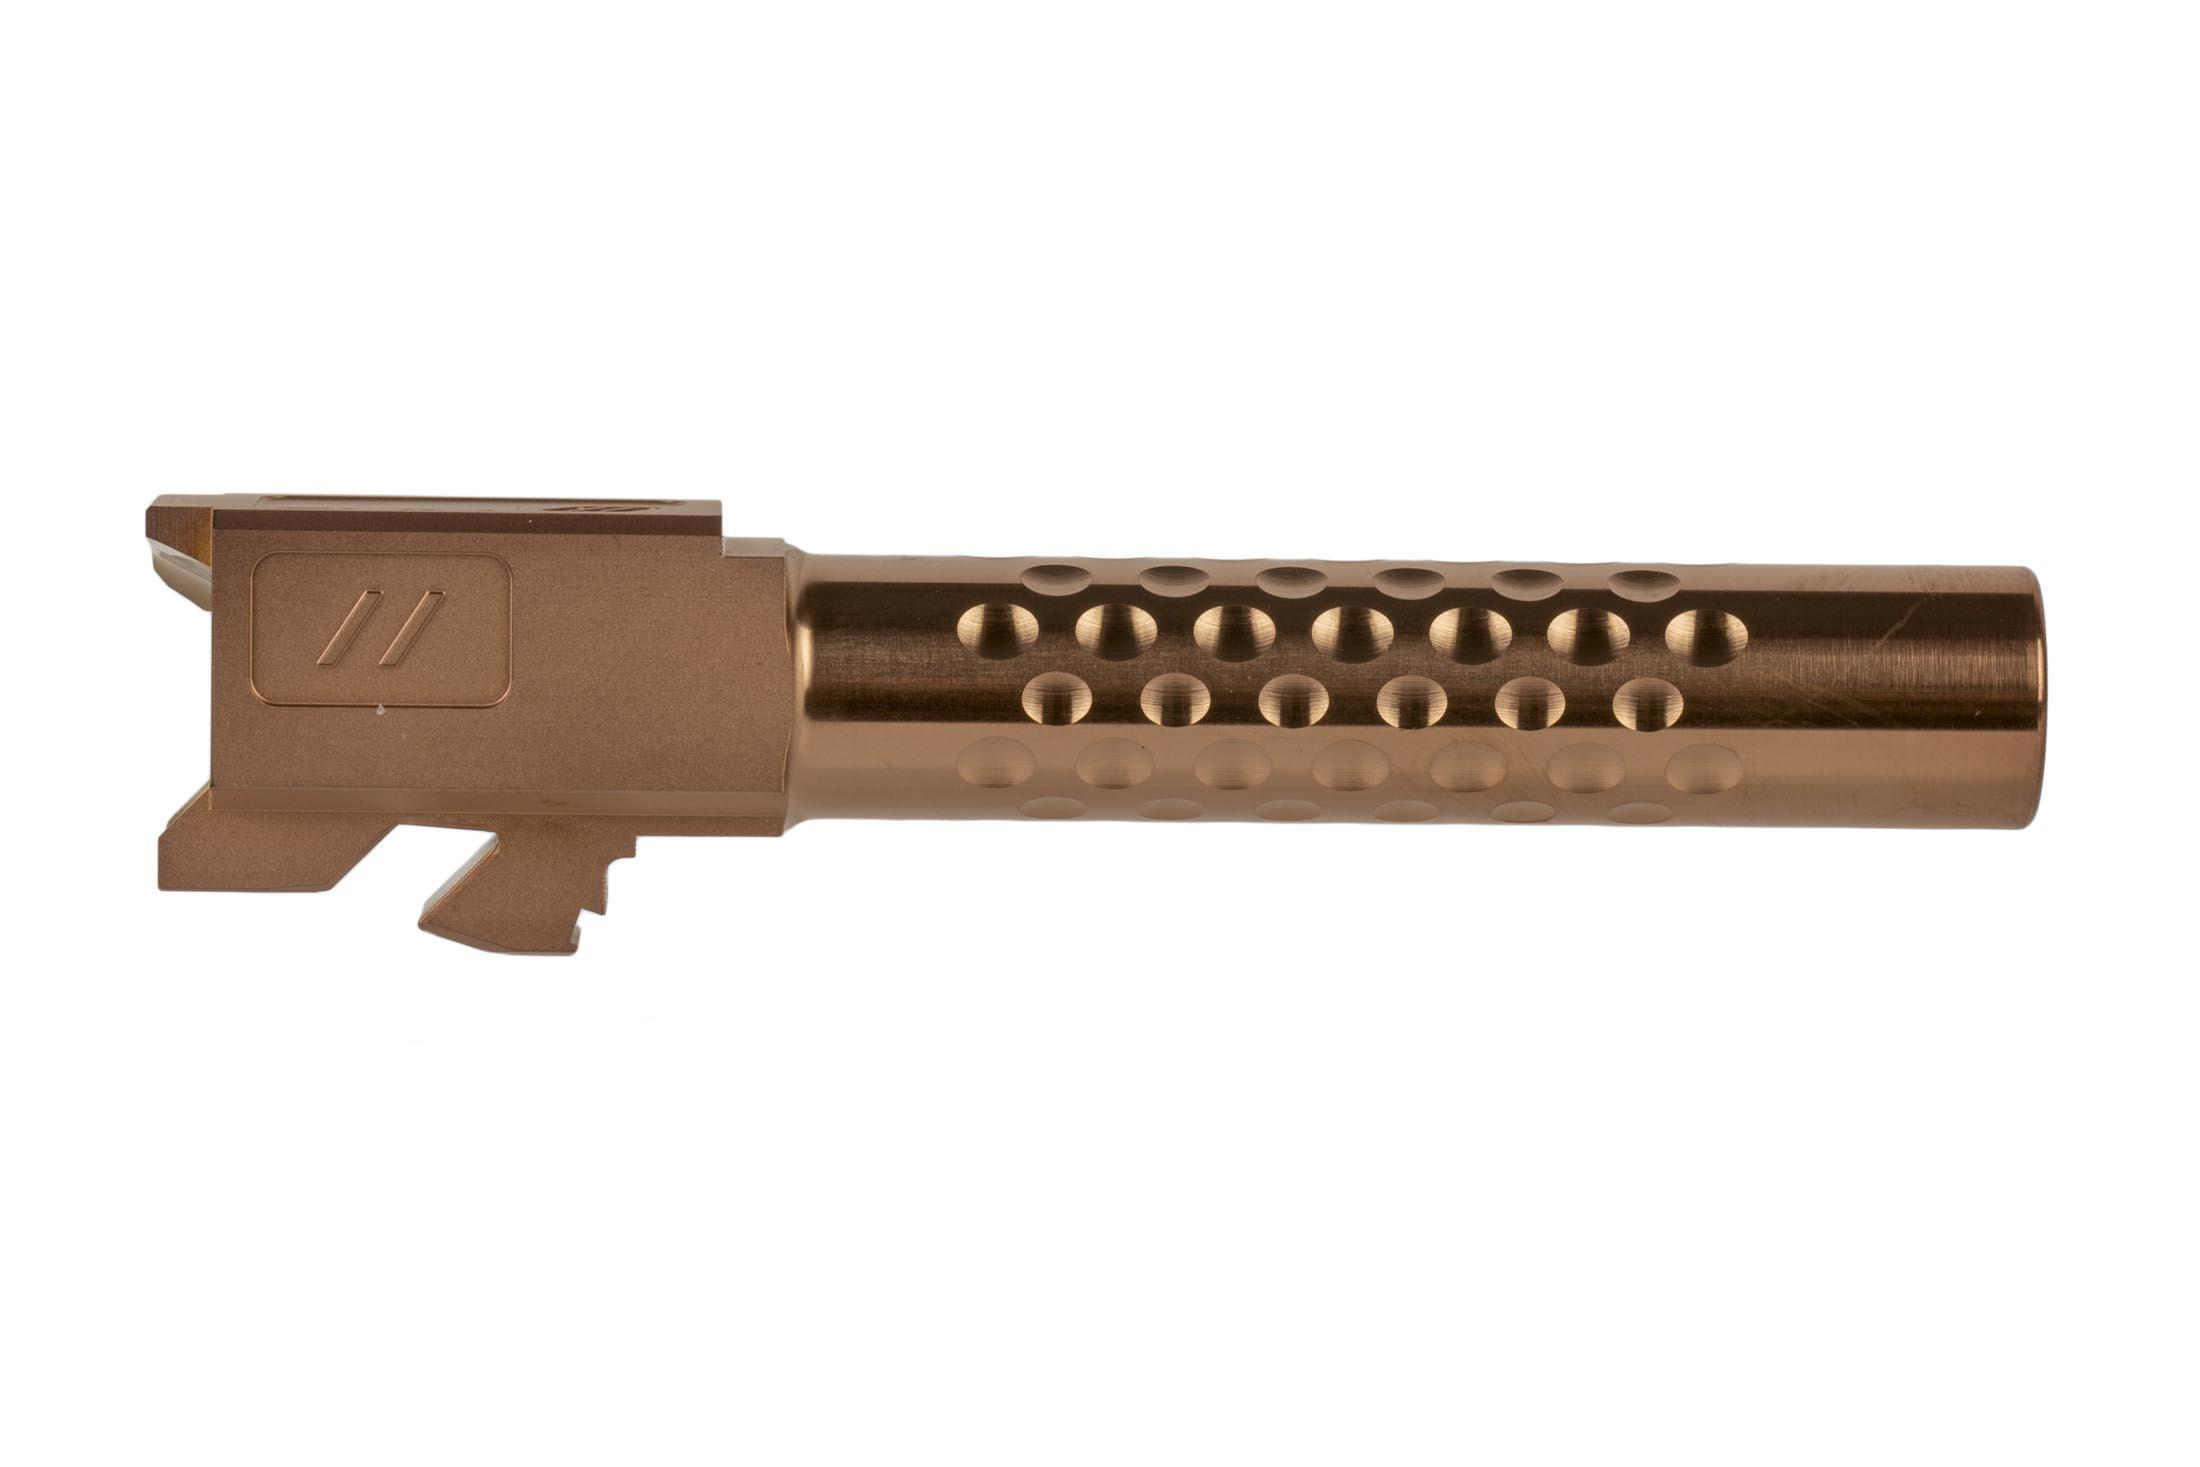 The Zev Tech G19 barrel with dimpled fluting is a drop in design with precise tolerances for a tight fit